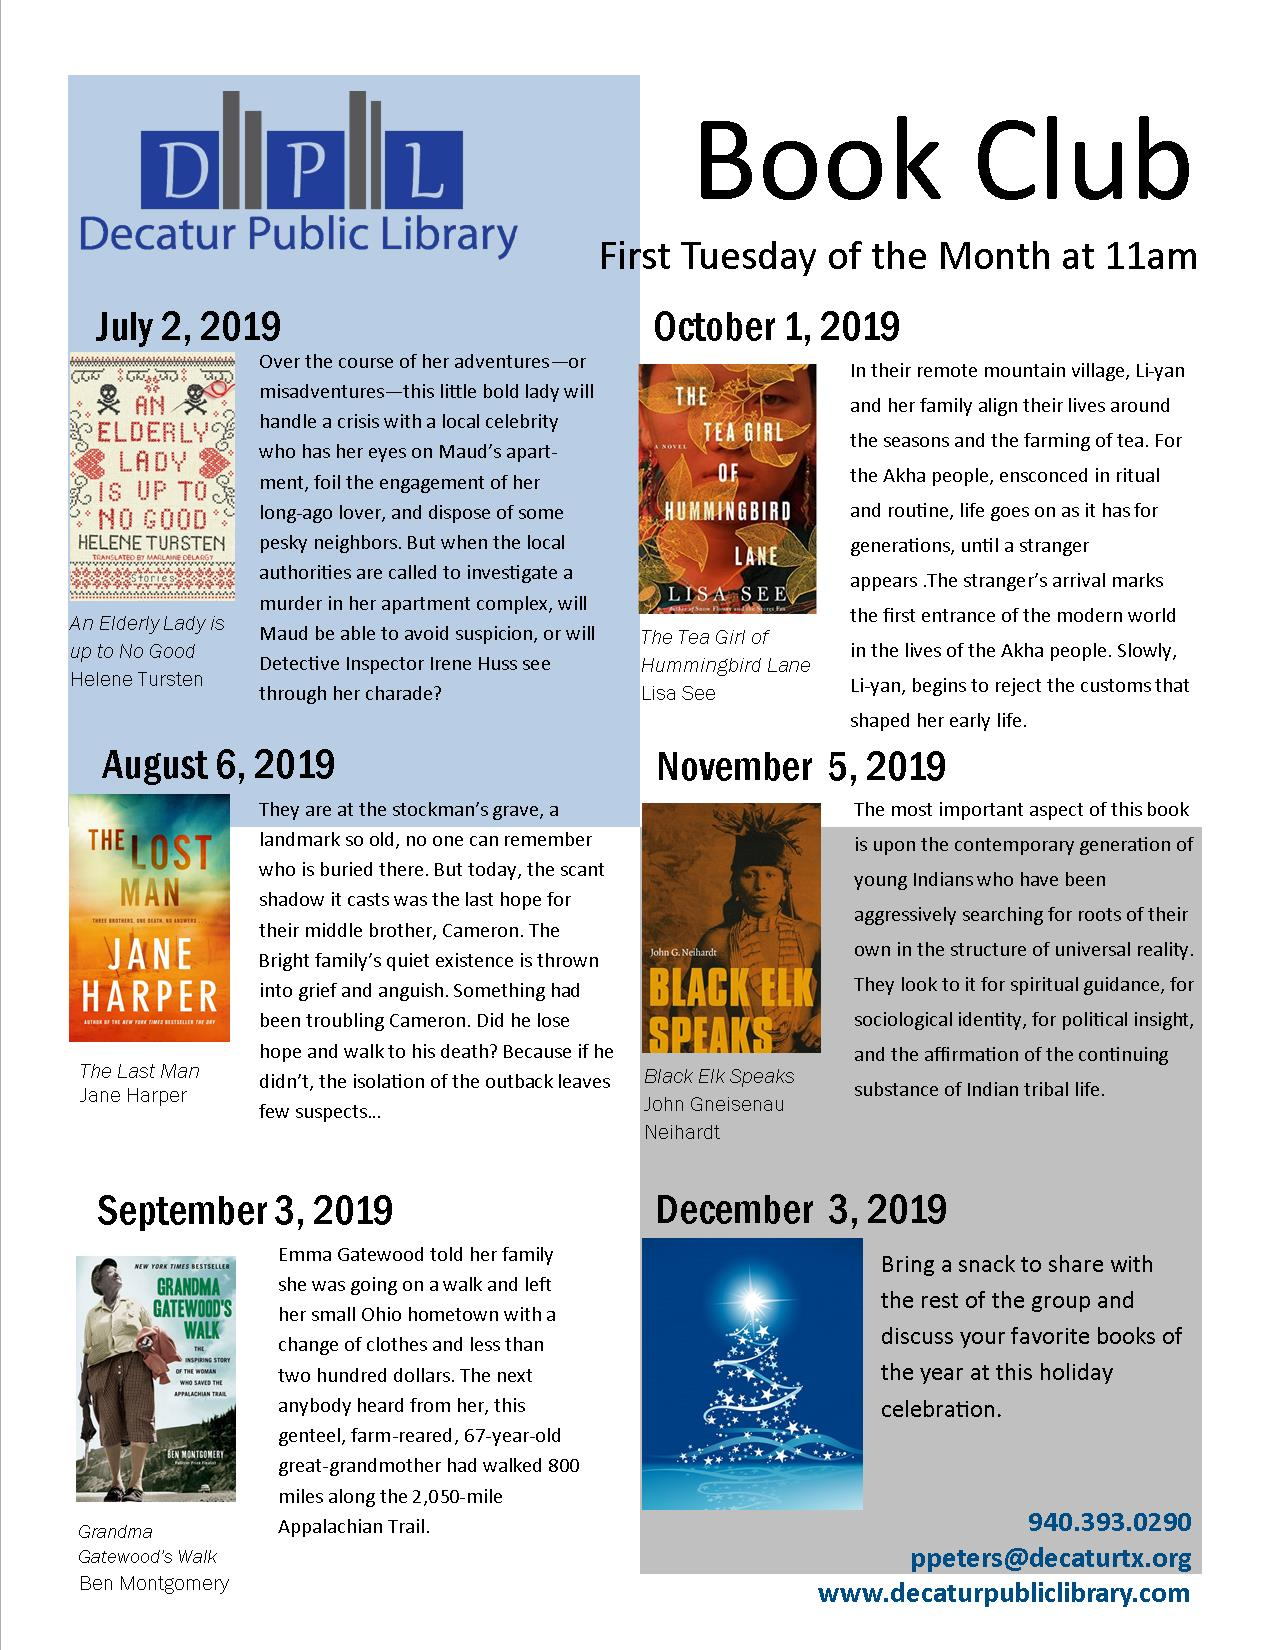 Book Club Schedule July 2019 to Dec 2019